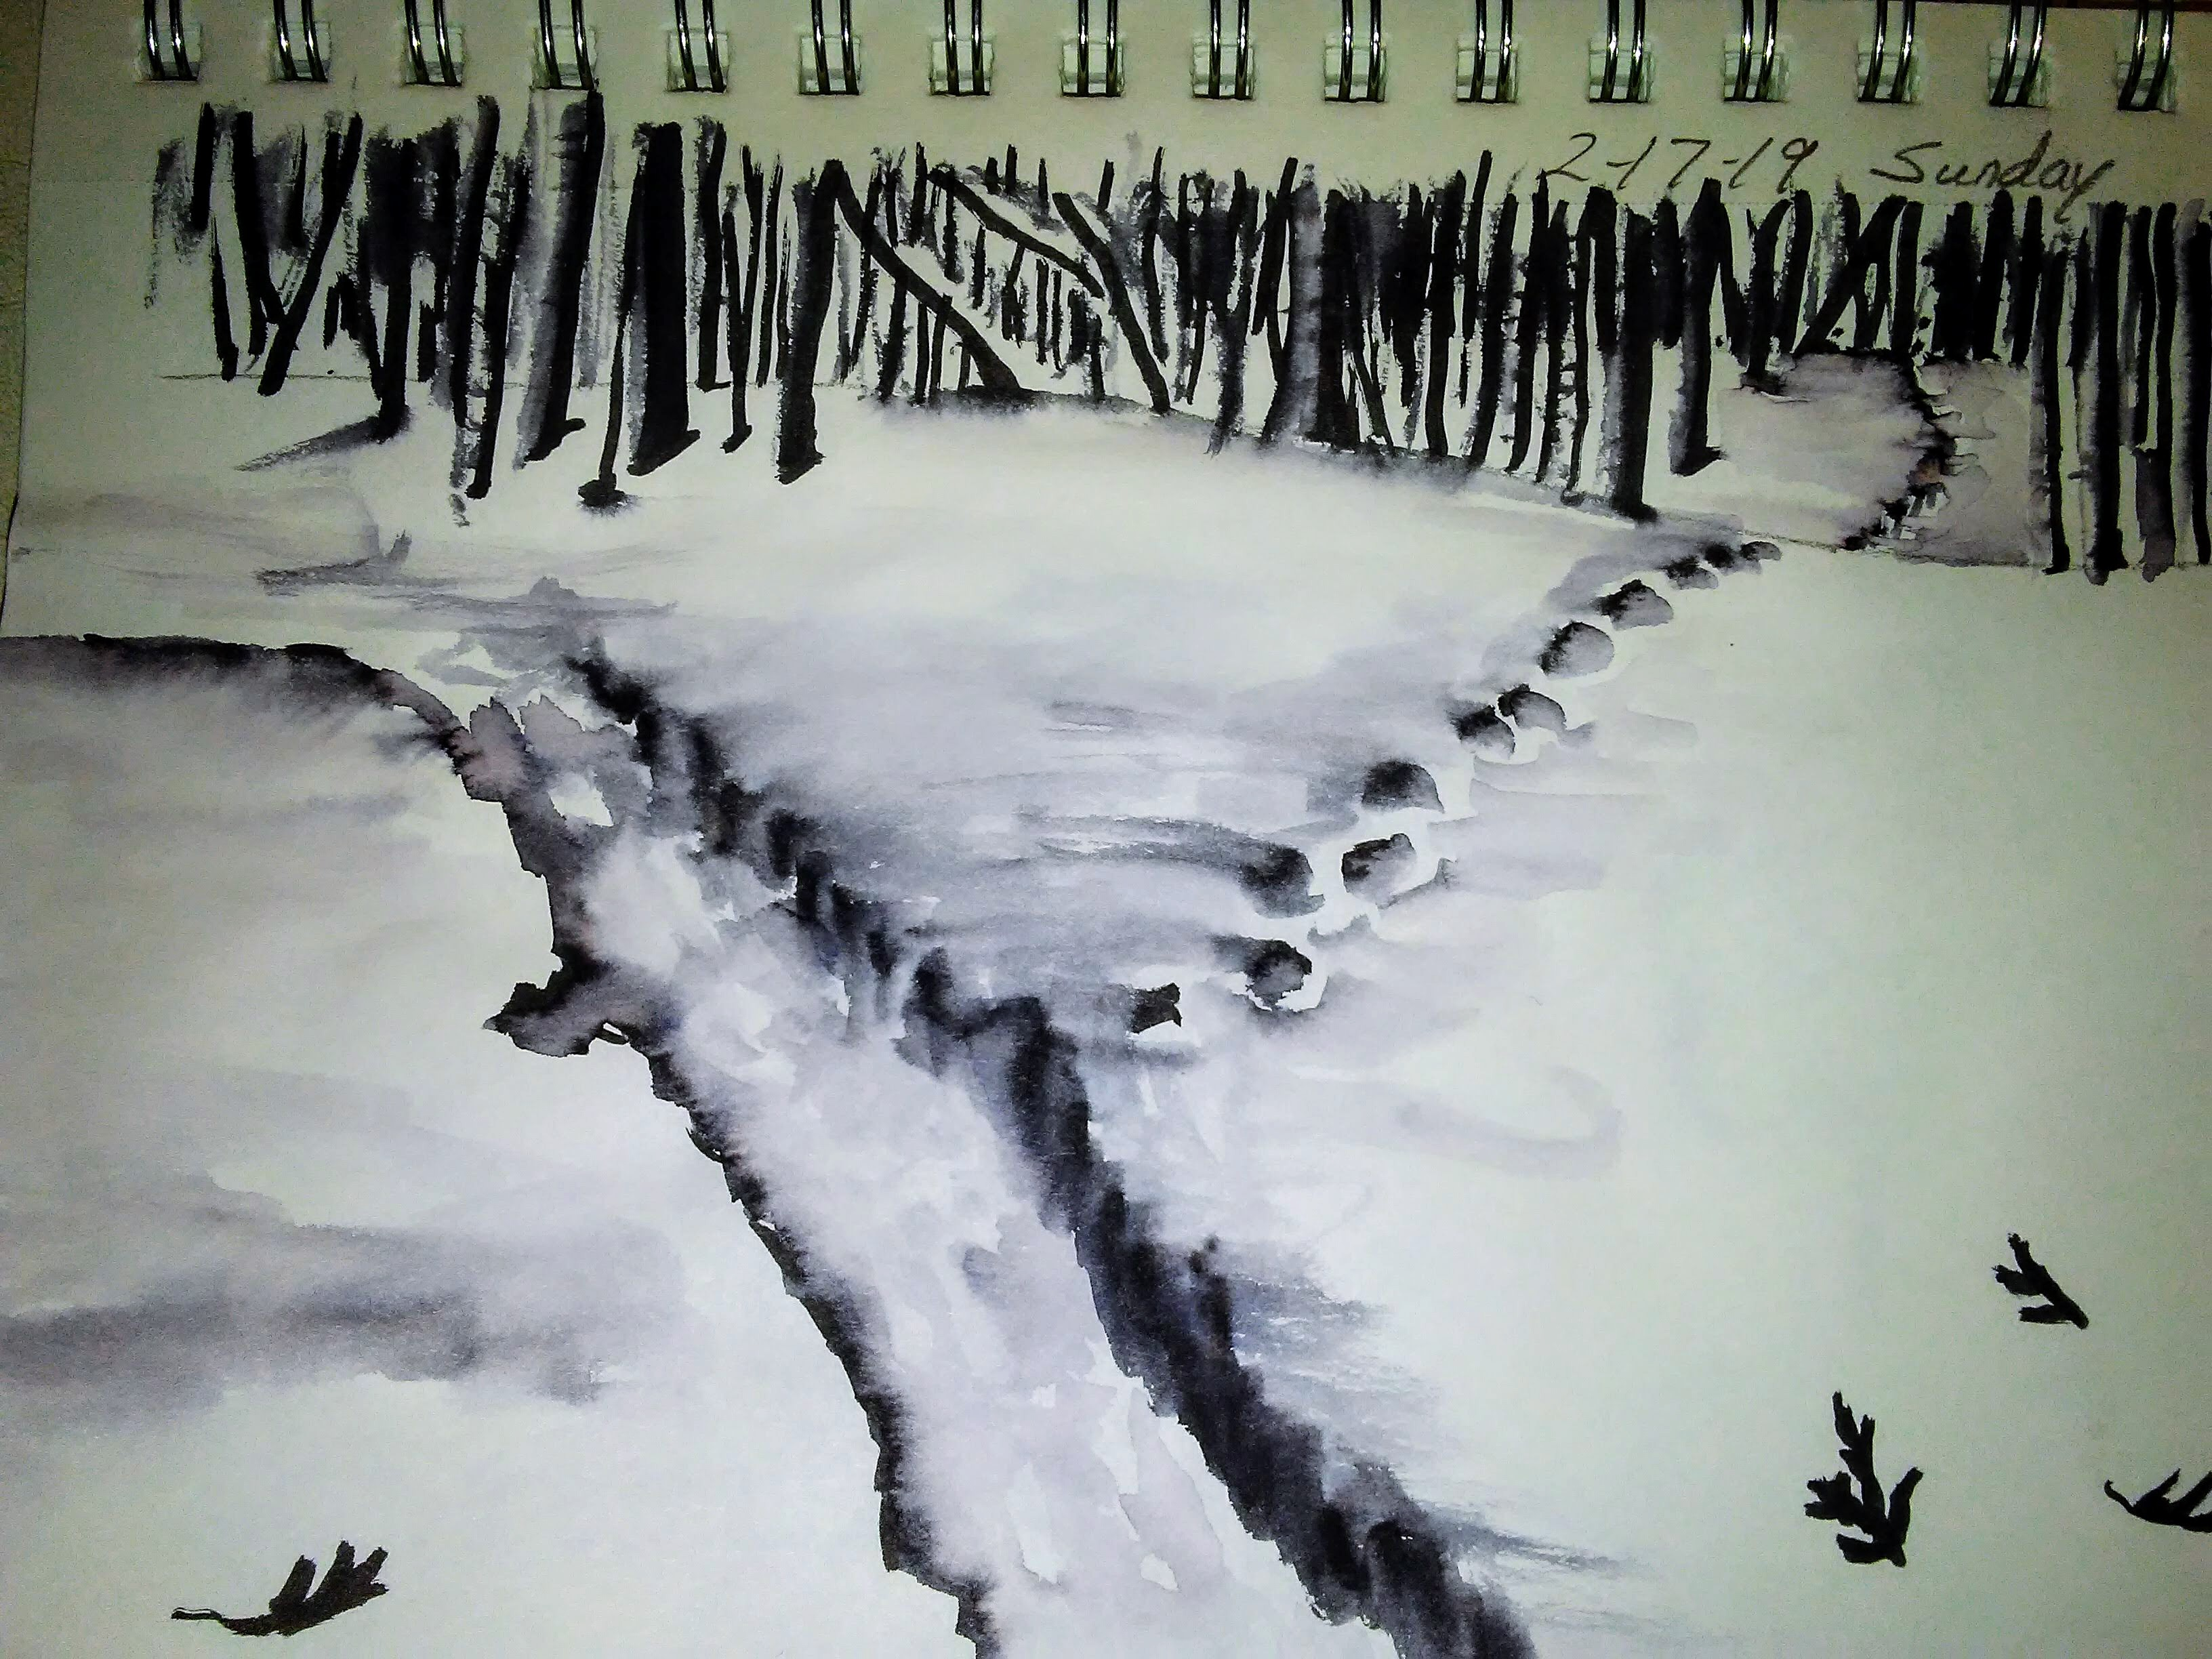 watercolor sketch in black and white of a snowy path